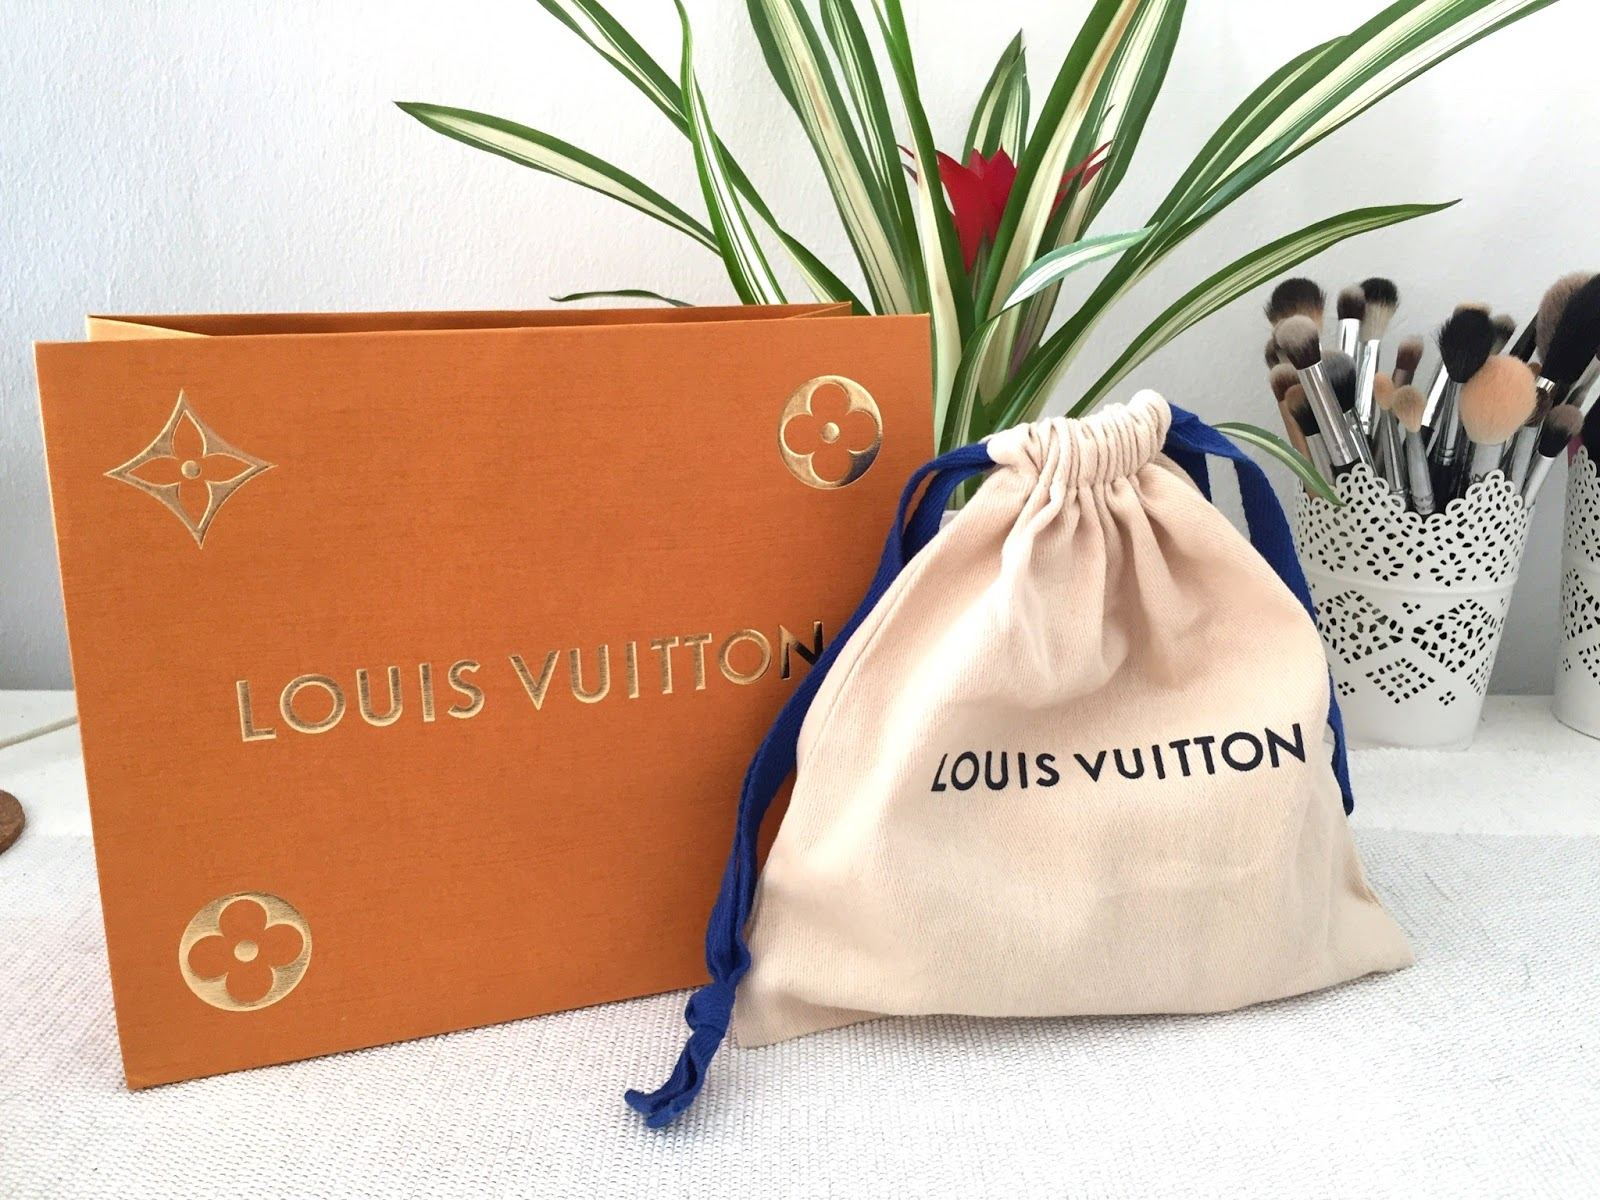 c1f32cdfaf6d I recently went on a spa trip with my fiancé for several days for his  birthday and since that spa is very close to a Louis Vuitton store